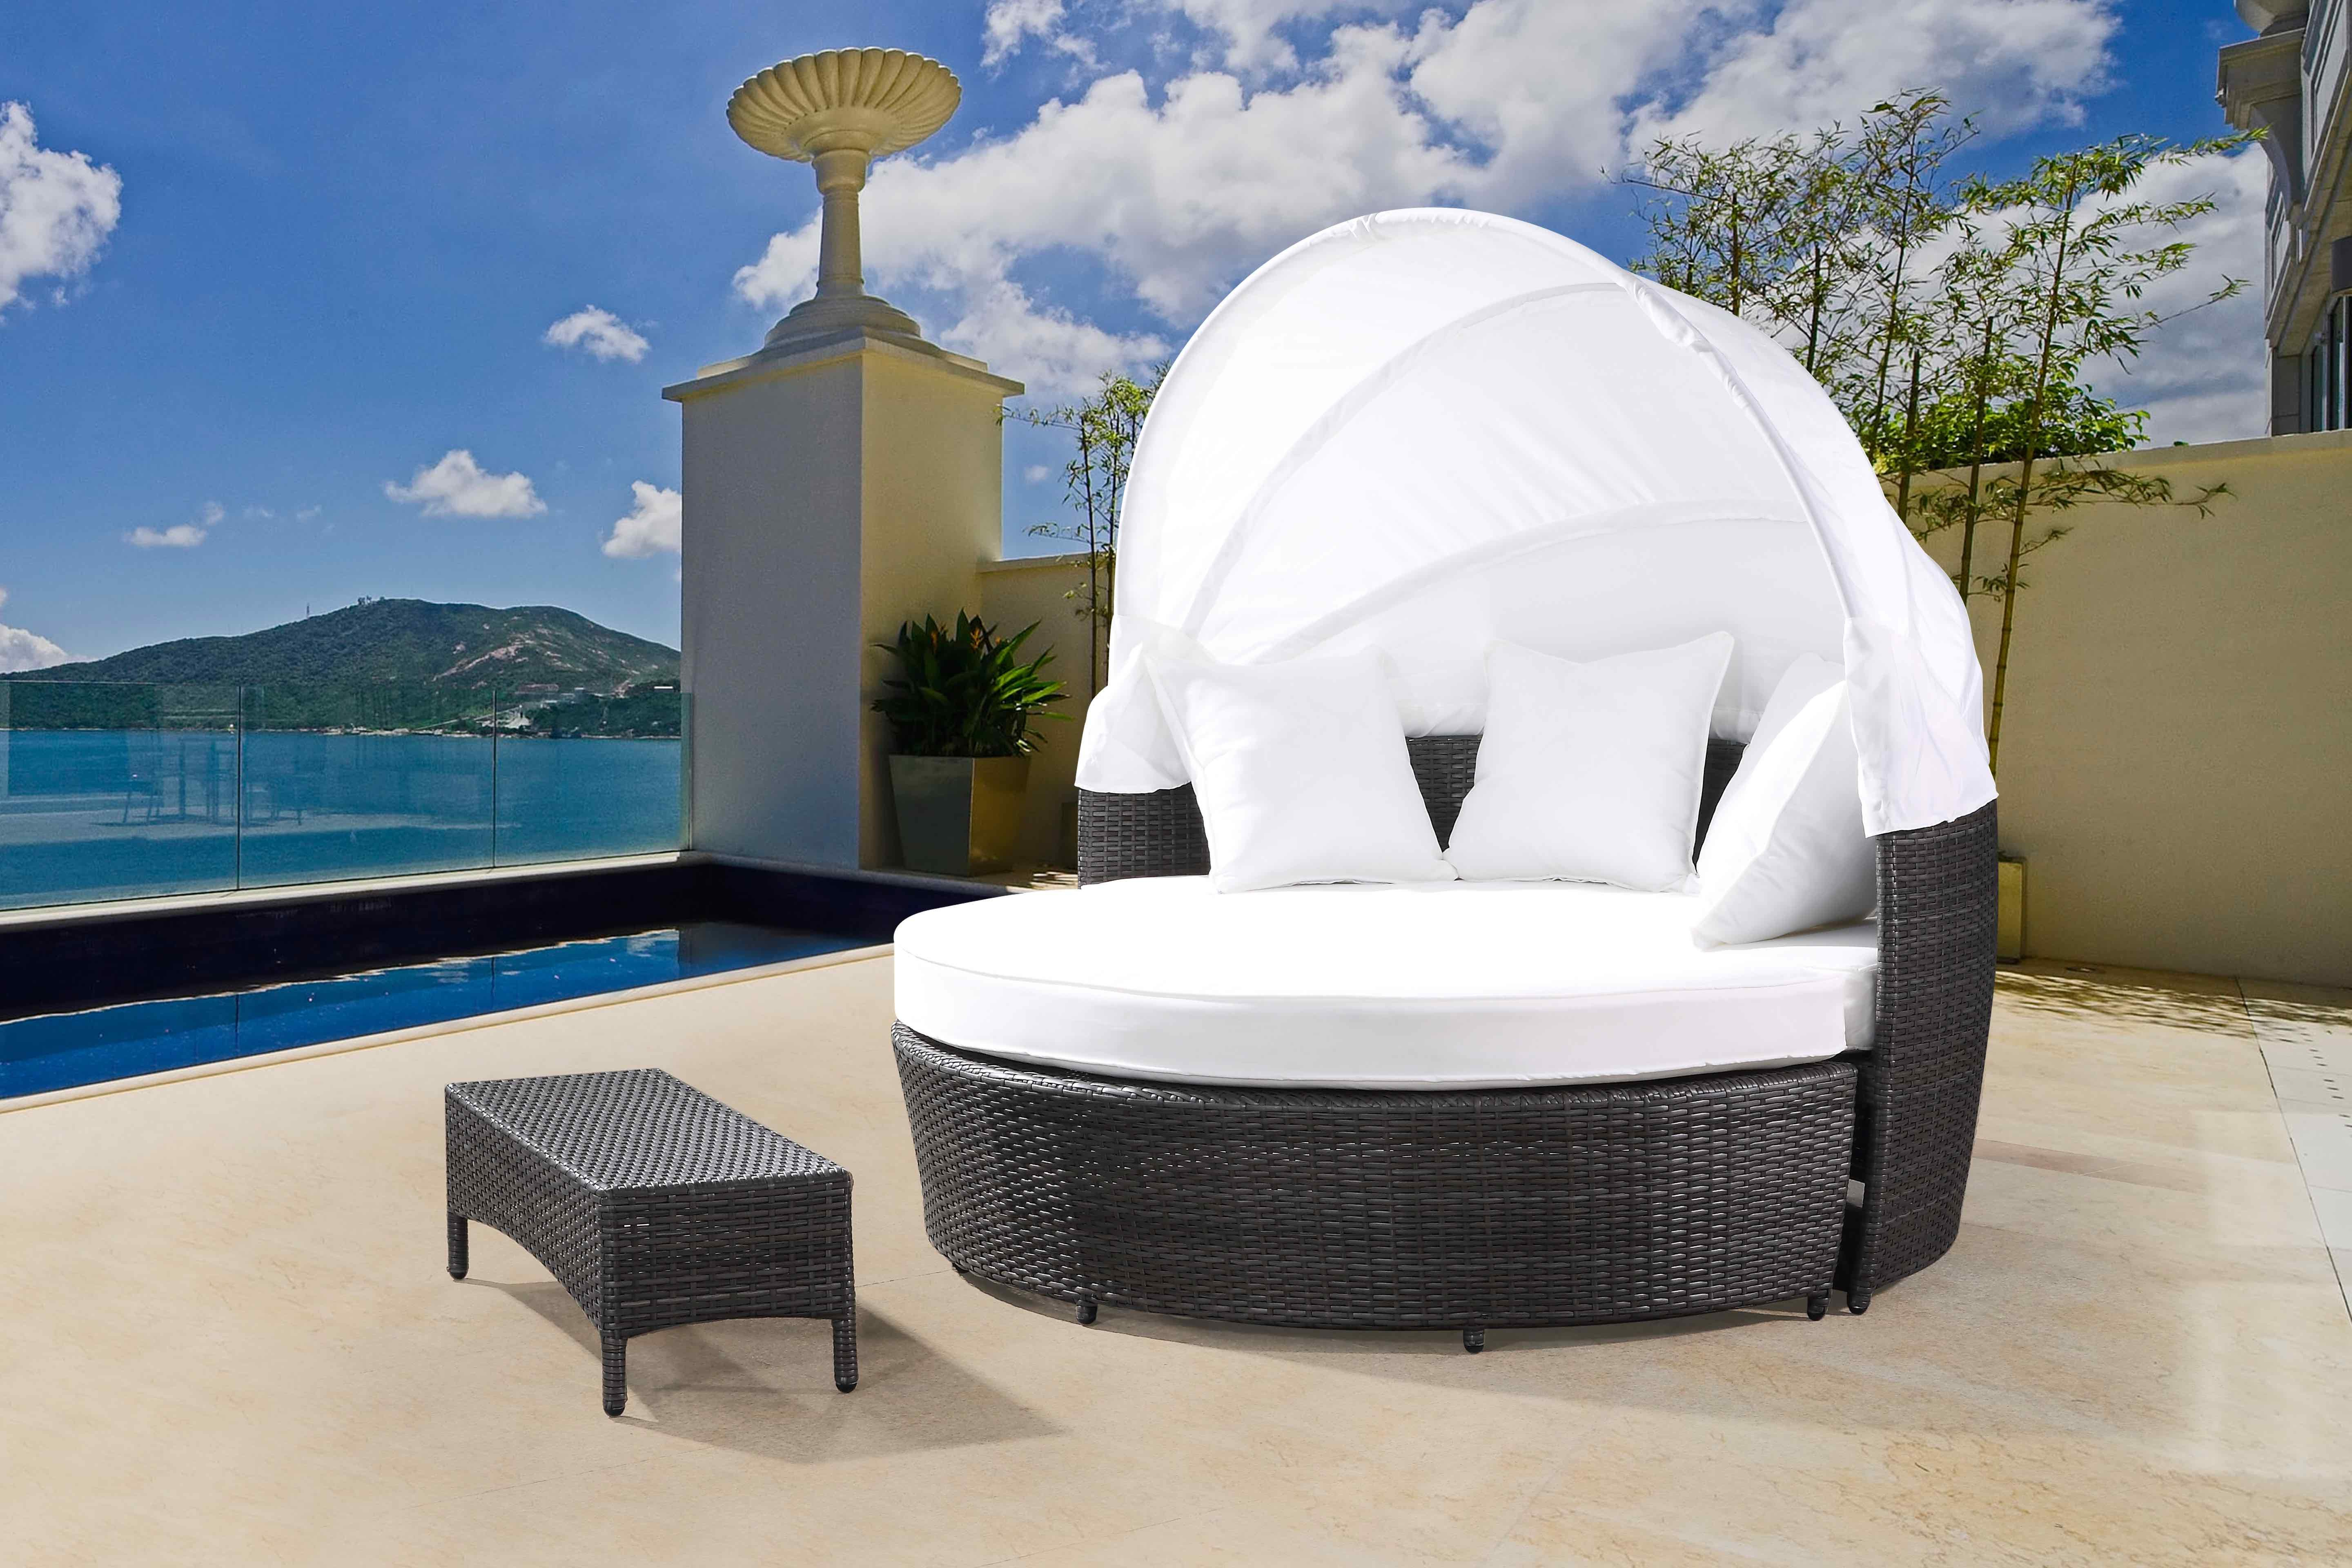 2019 Lammers Outdoor Wicker Daybeds With Cushions Intended For Carrasco Patio Daybed With Cushions (View 2 of 20)